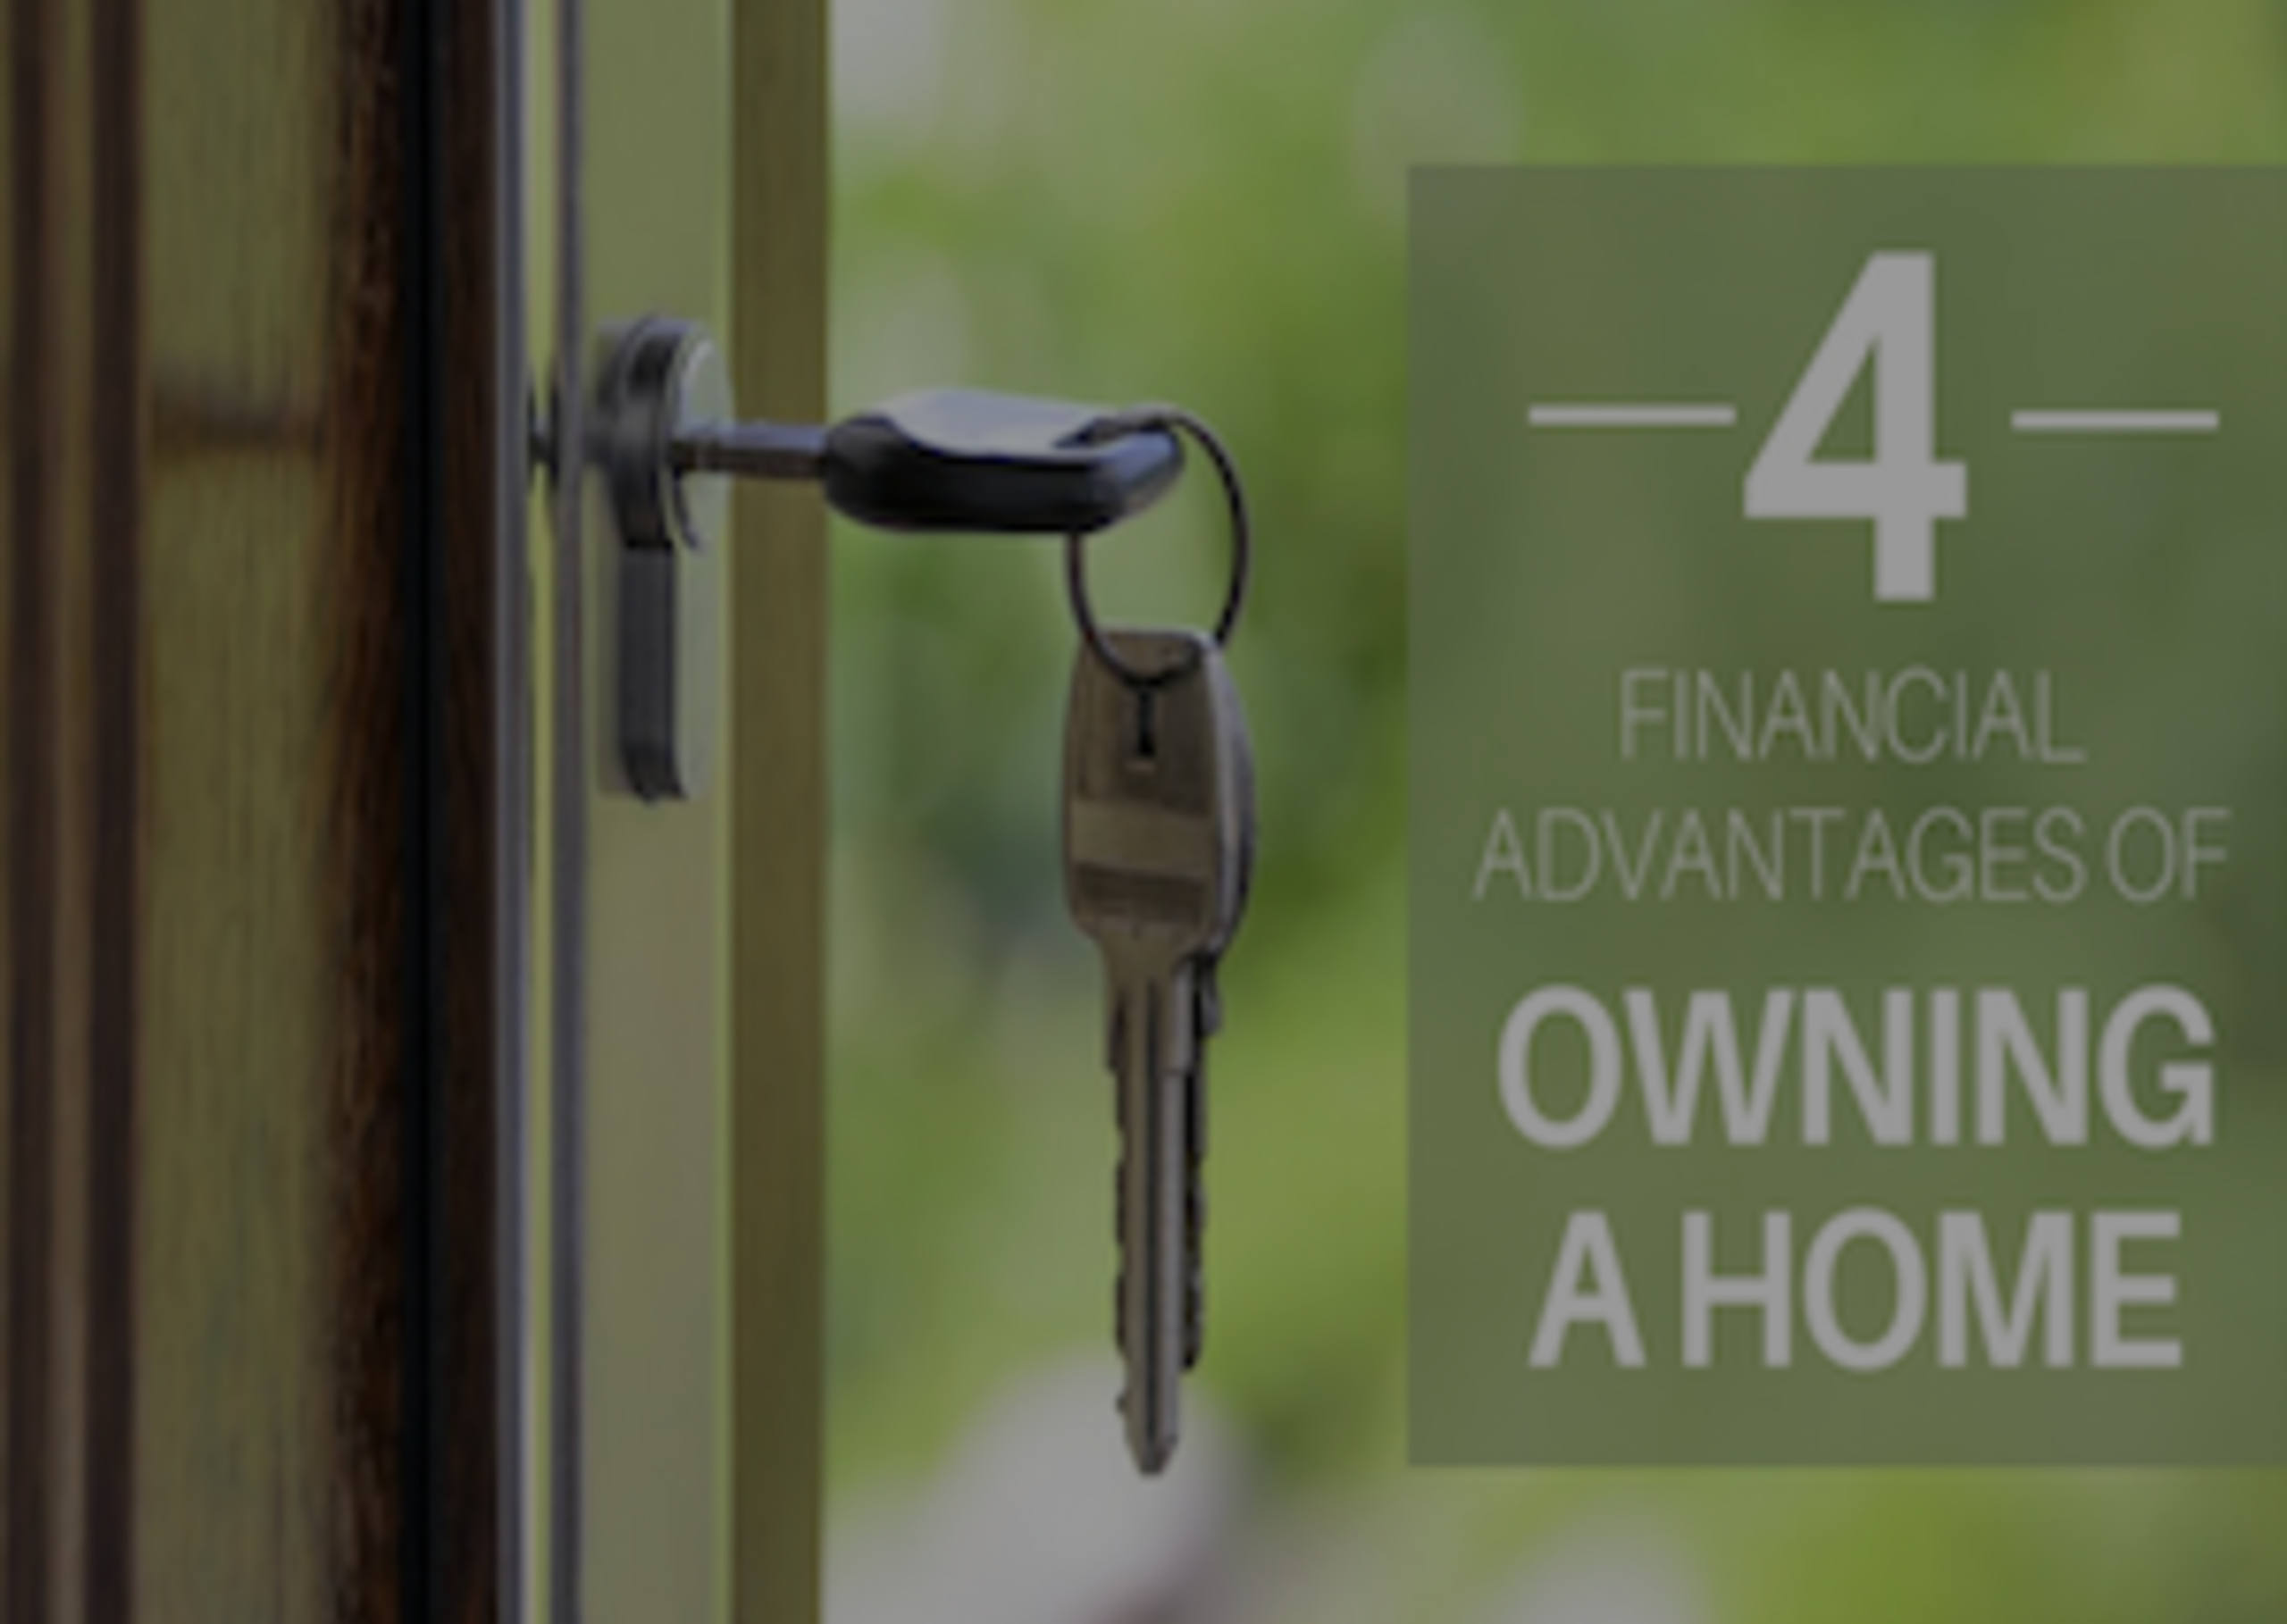 4 Financial Advantages of Owning a Home